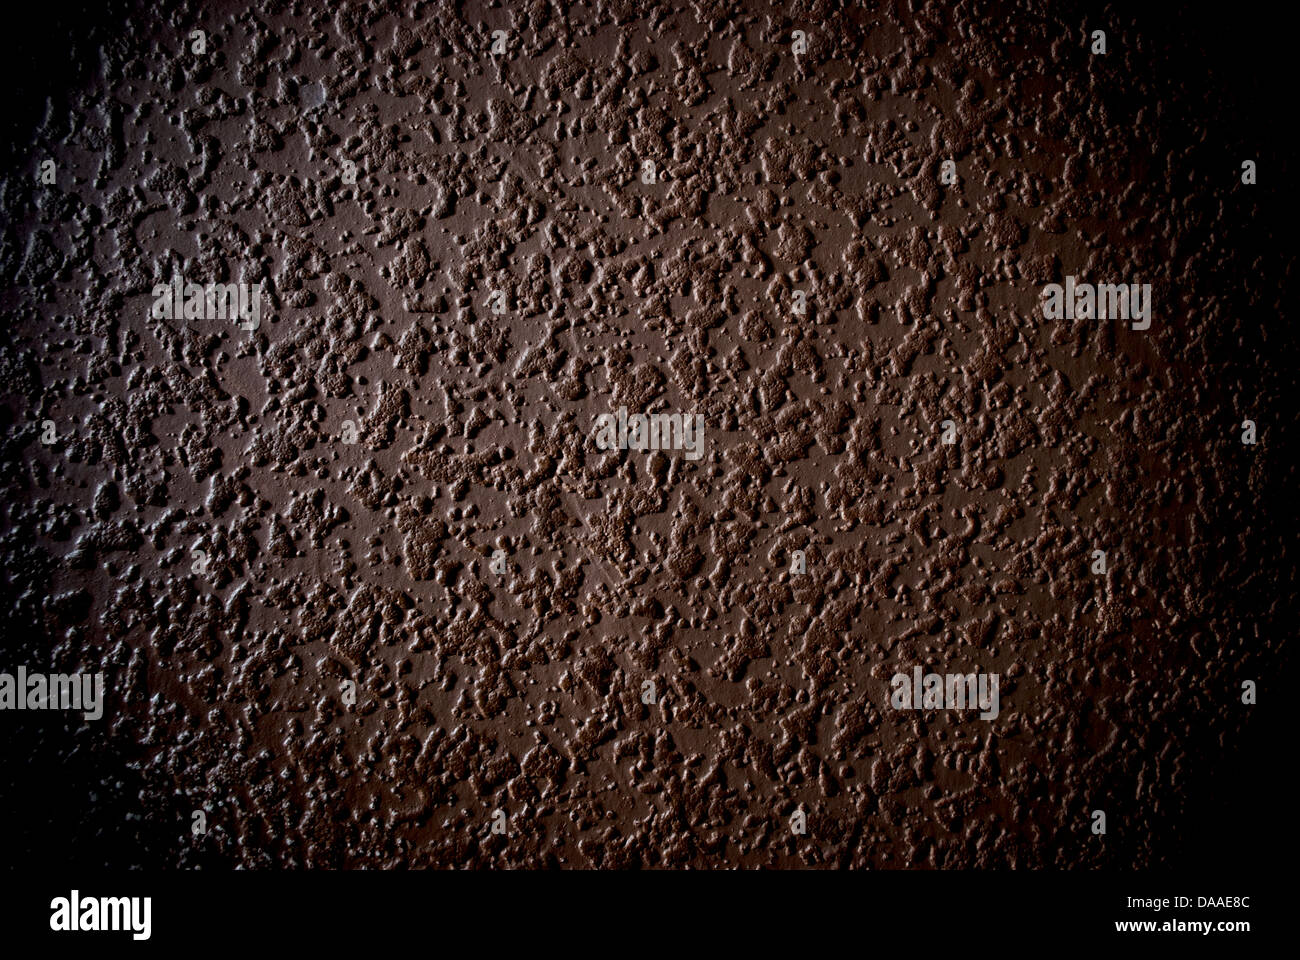 Grunge brown grained wall background or texture - Stock Image